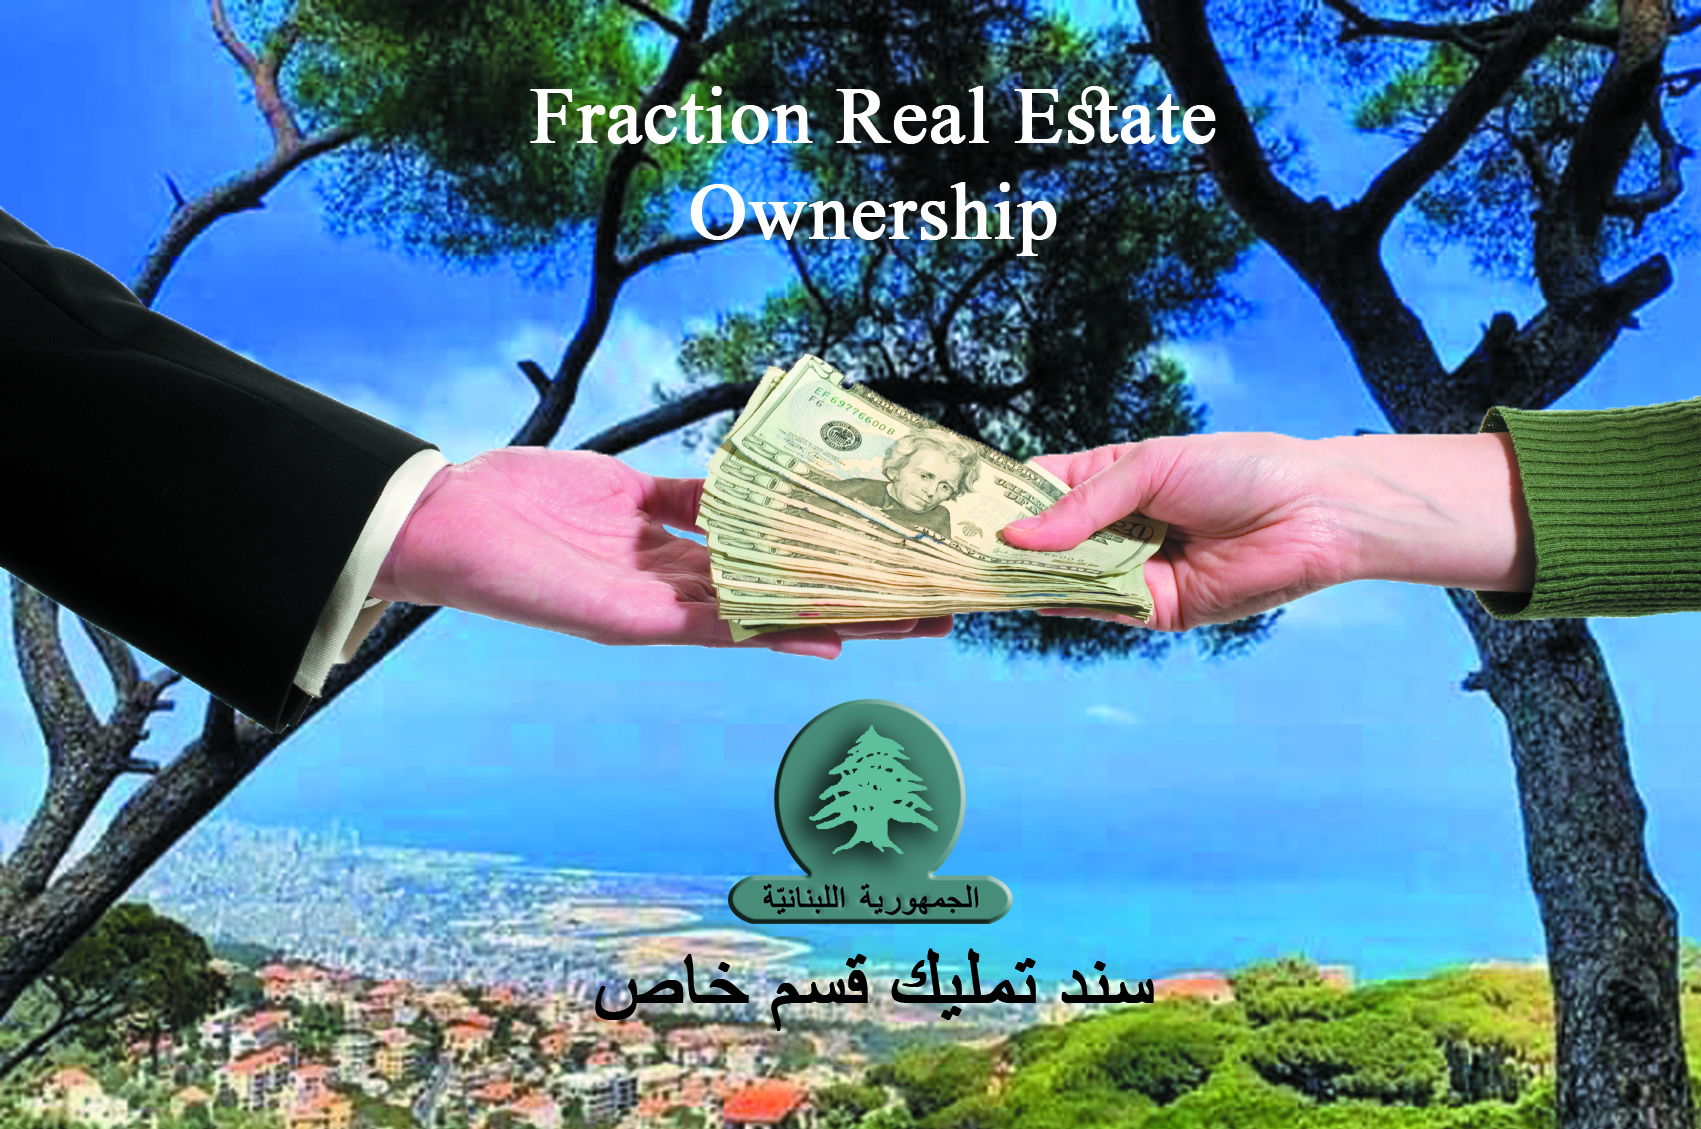 Fraction Real Estate Ownership